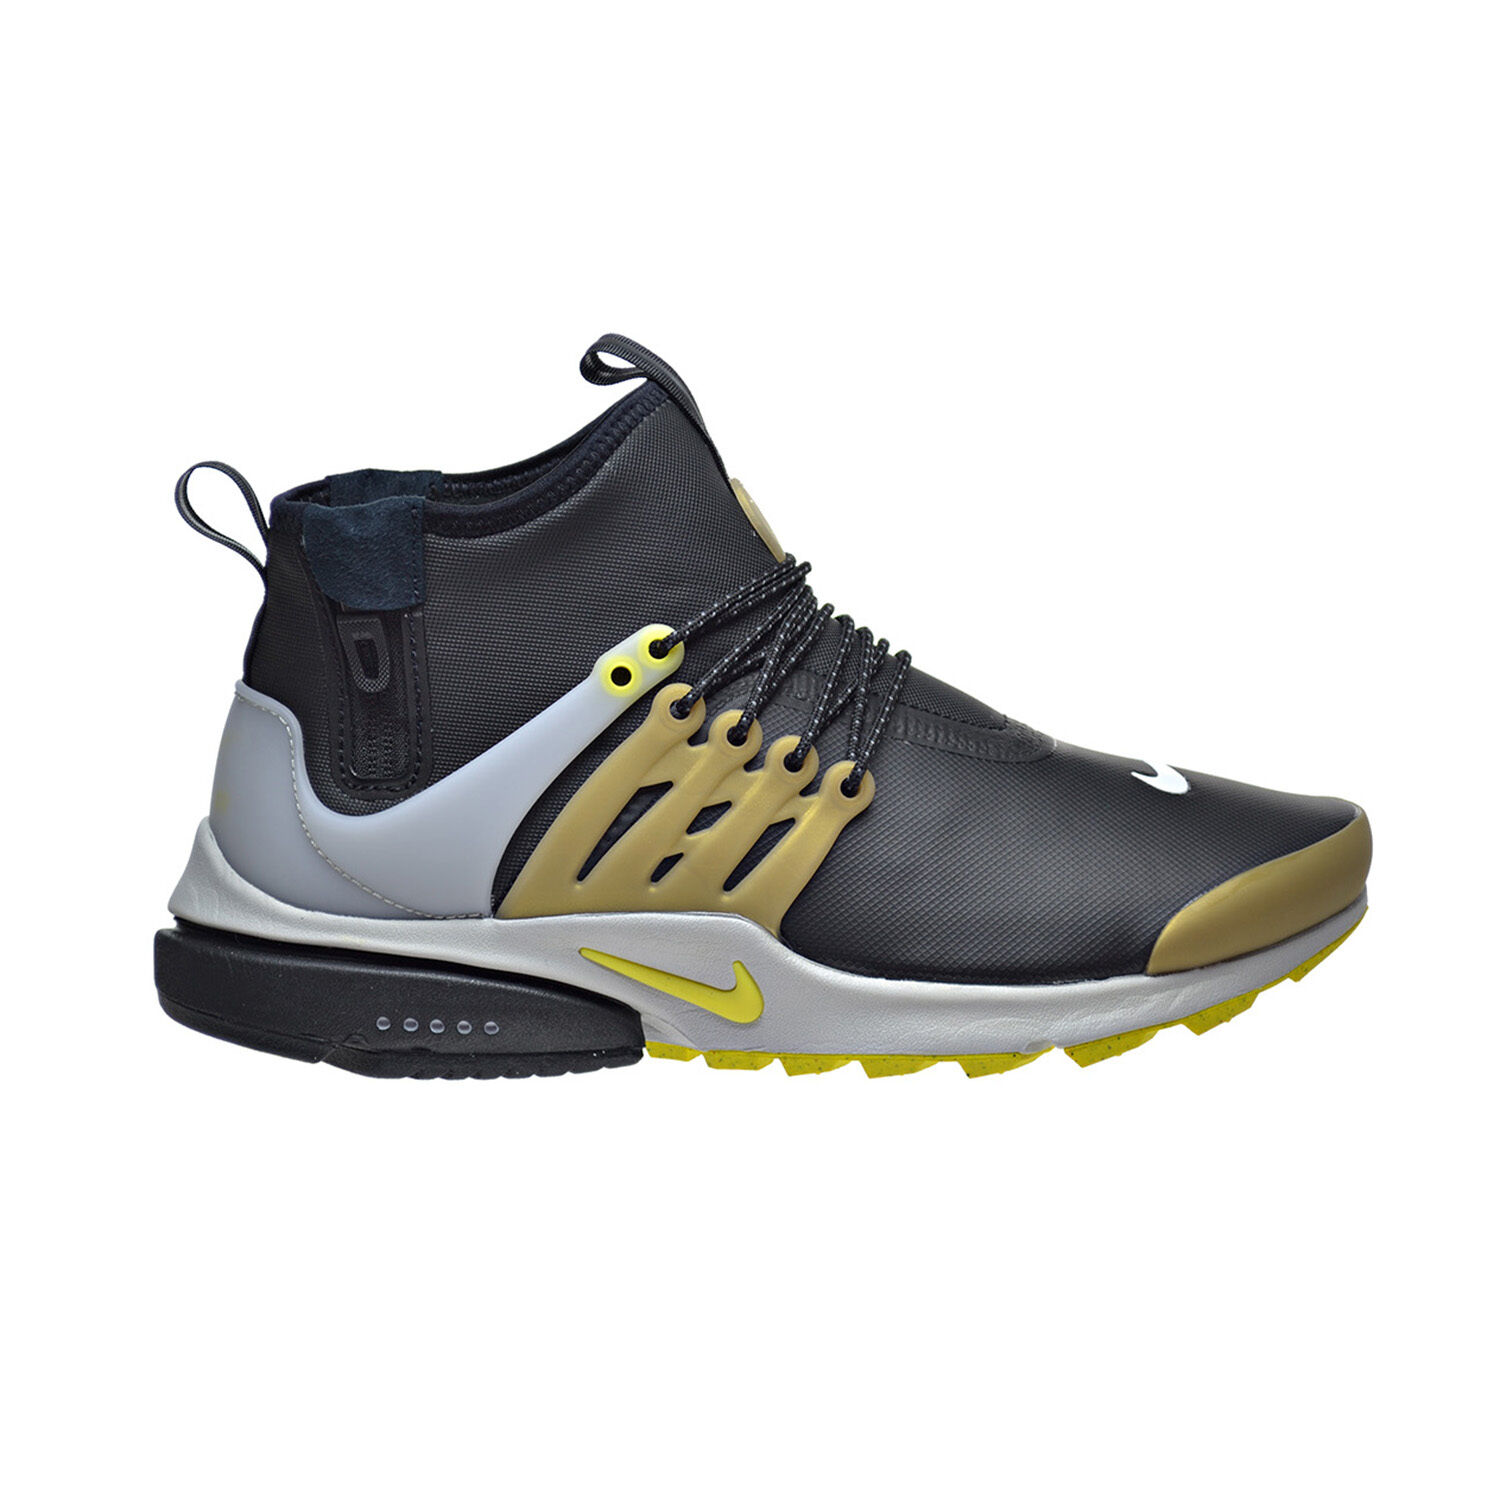 quality design 20dcb a0d68 chic Nike Air Presto Mid Utility Men s Shoes Black Gold Grey Yellow Streak